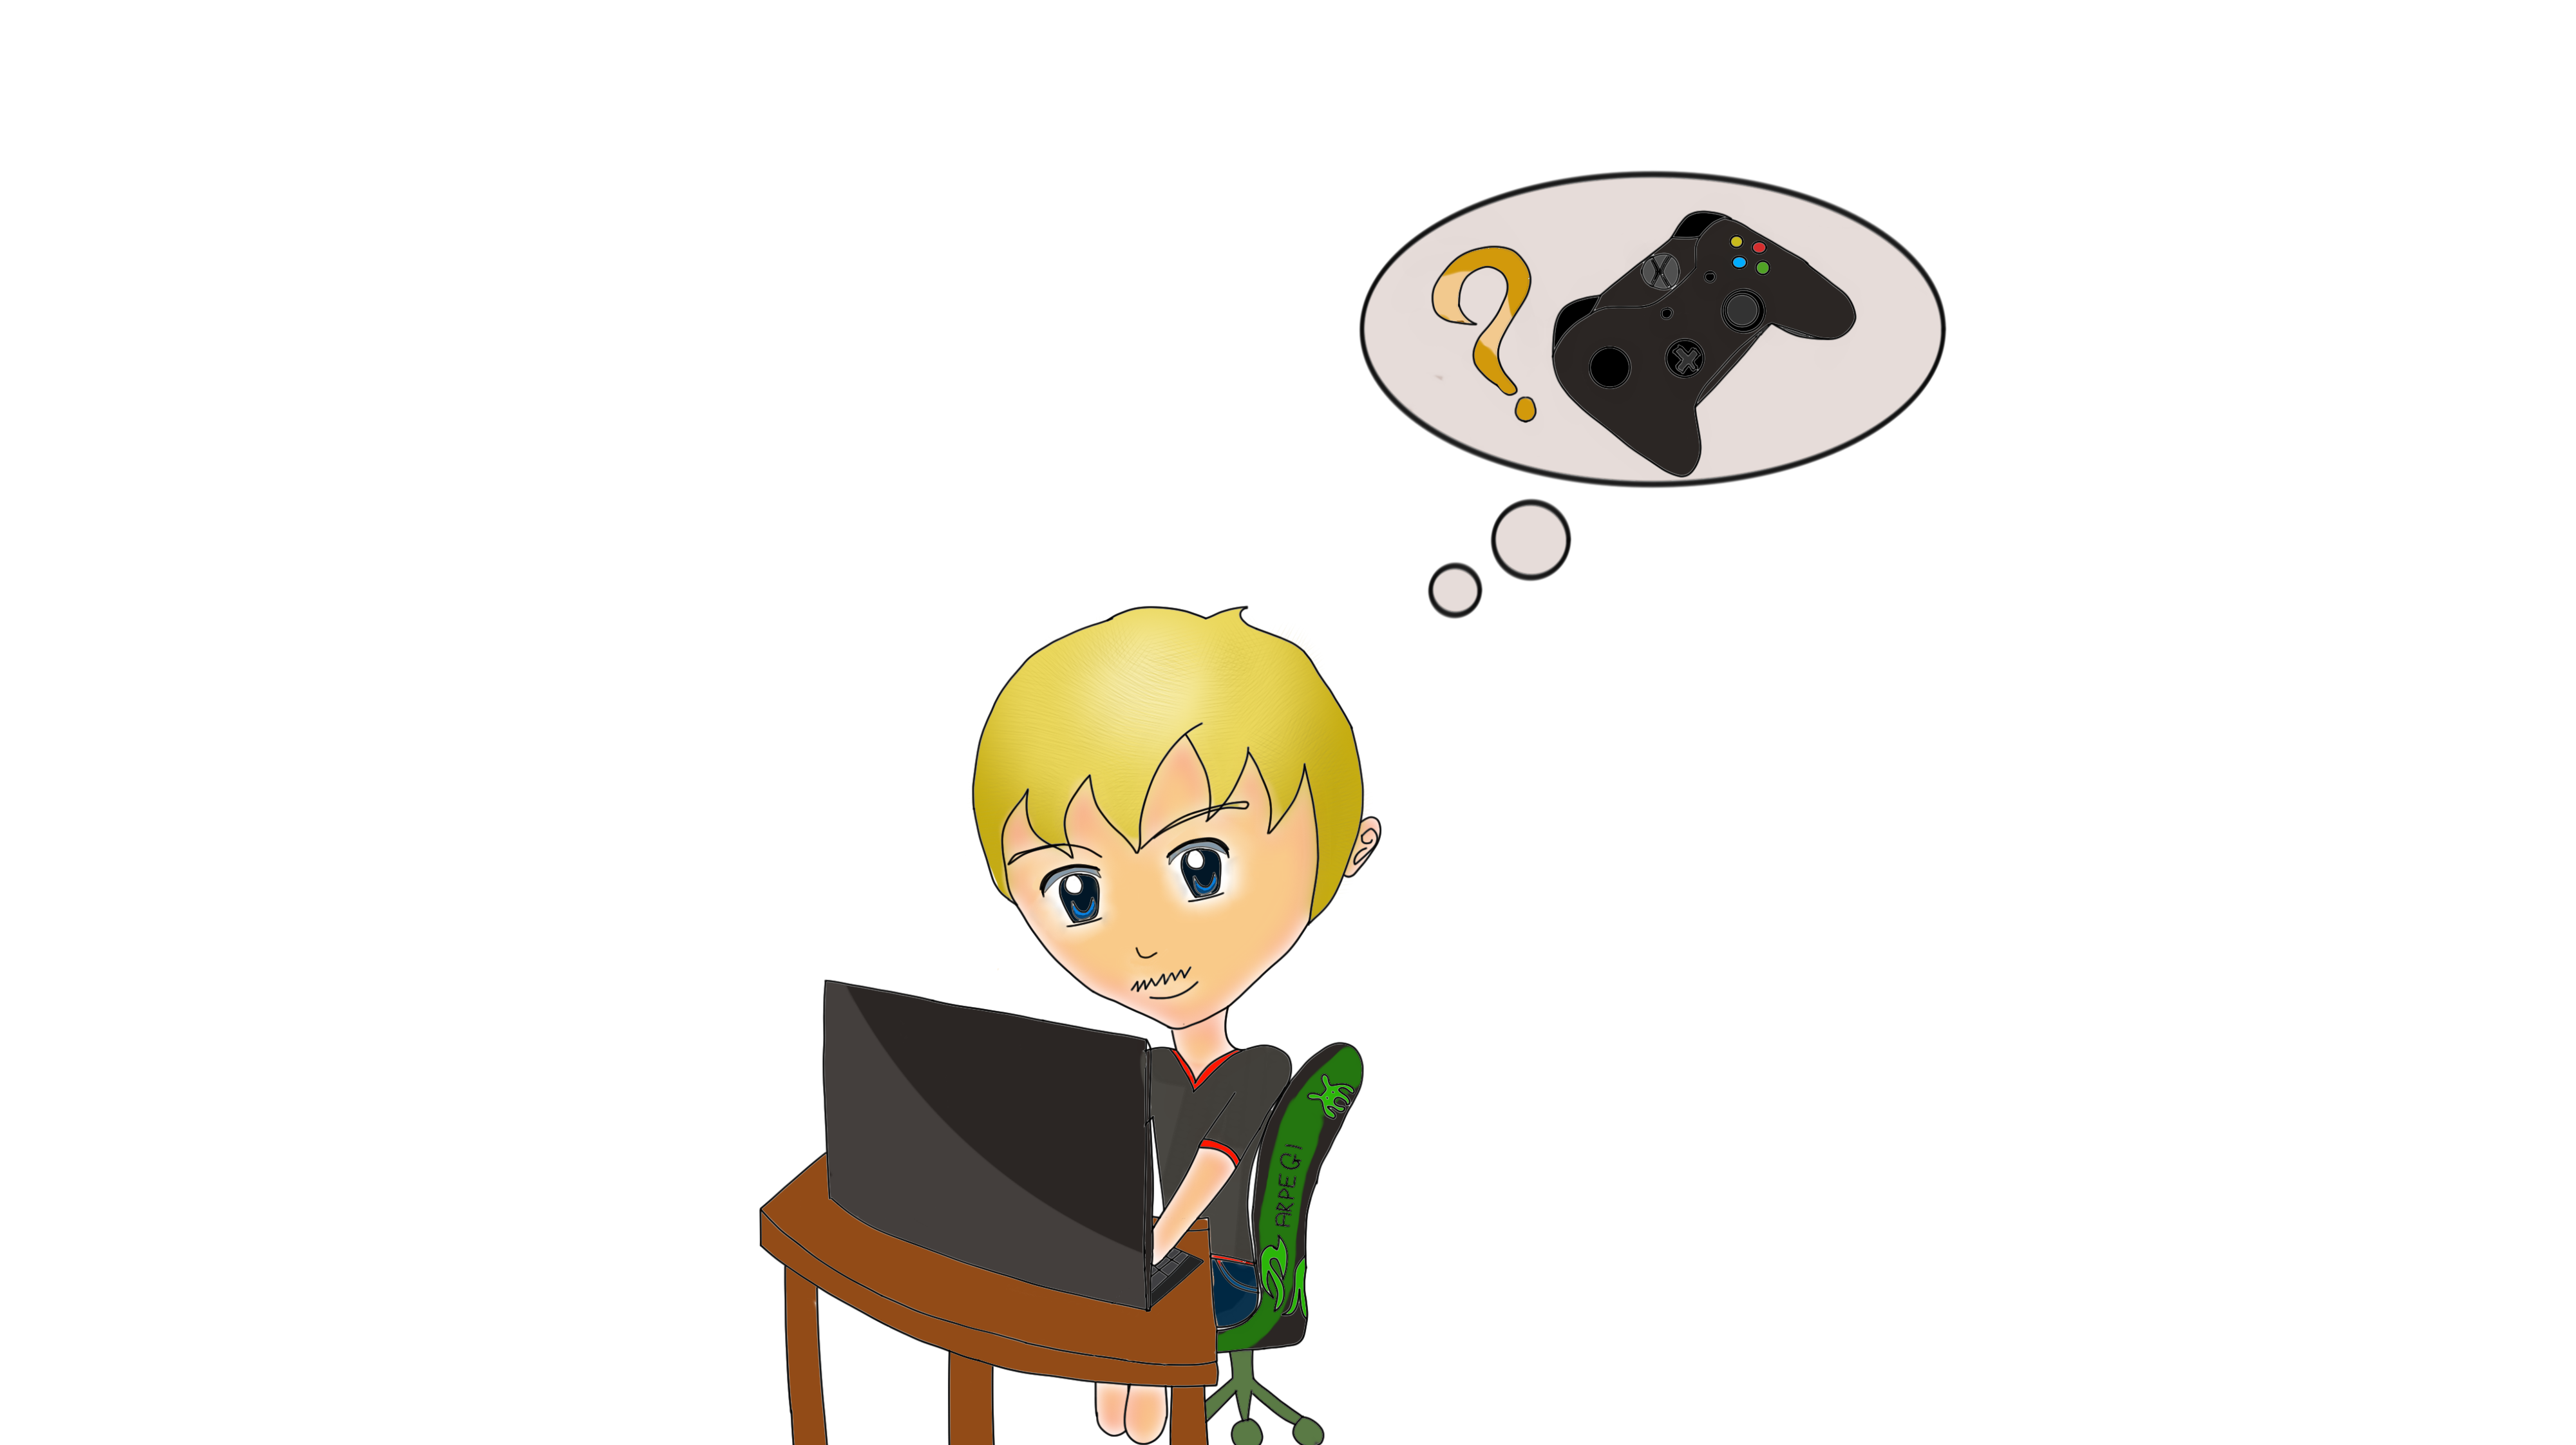 I can play video games with you